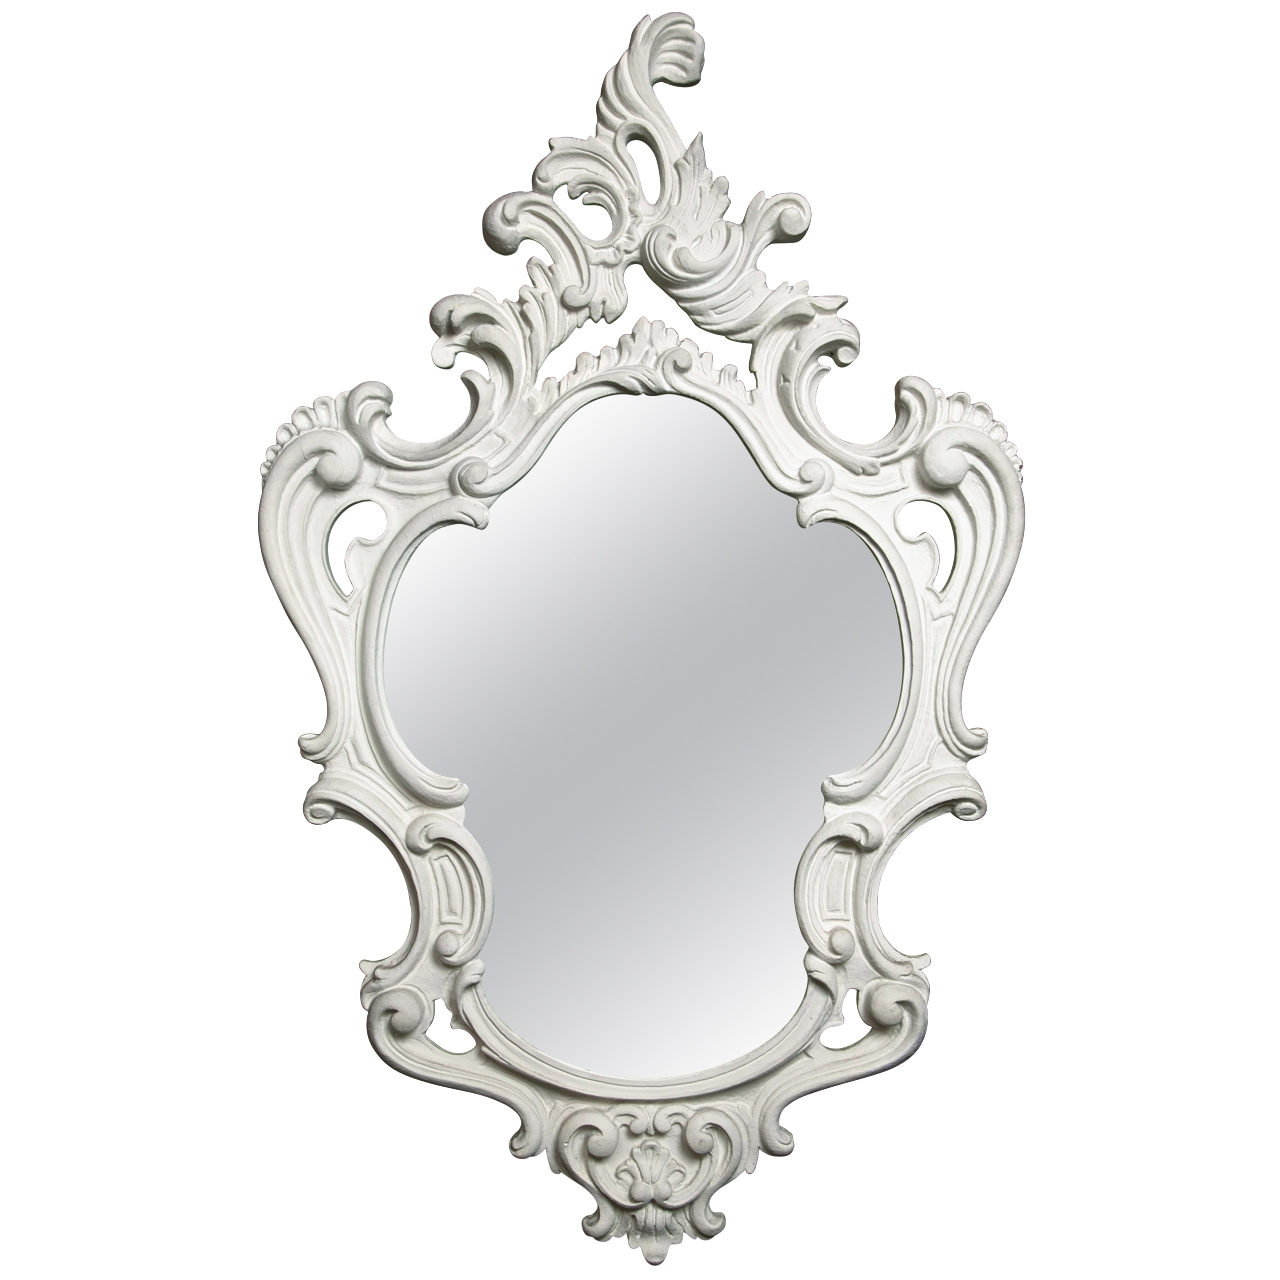 Dorothy Draper Style Baroque Plaster Mirror Modern Wall Mirrors Pertaining To Modern Baroque Mirror (Image 8 of 15)